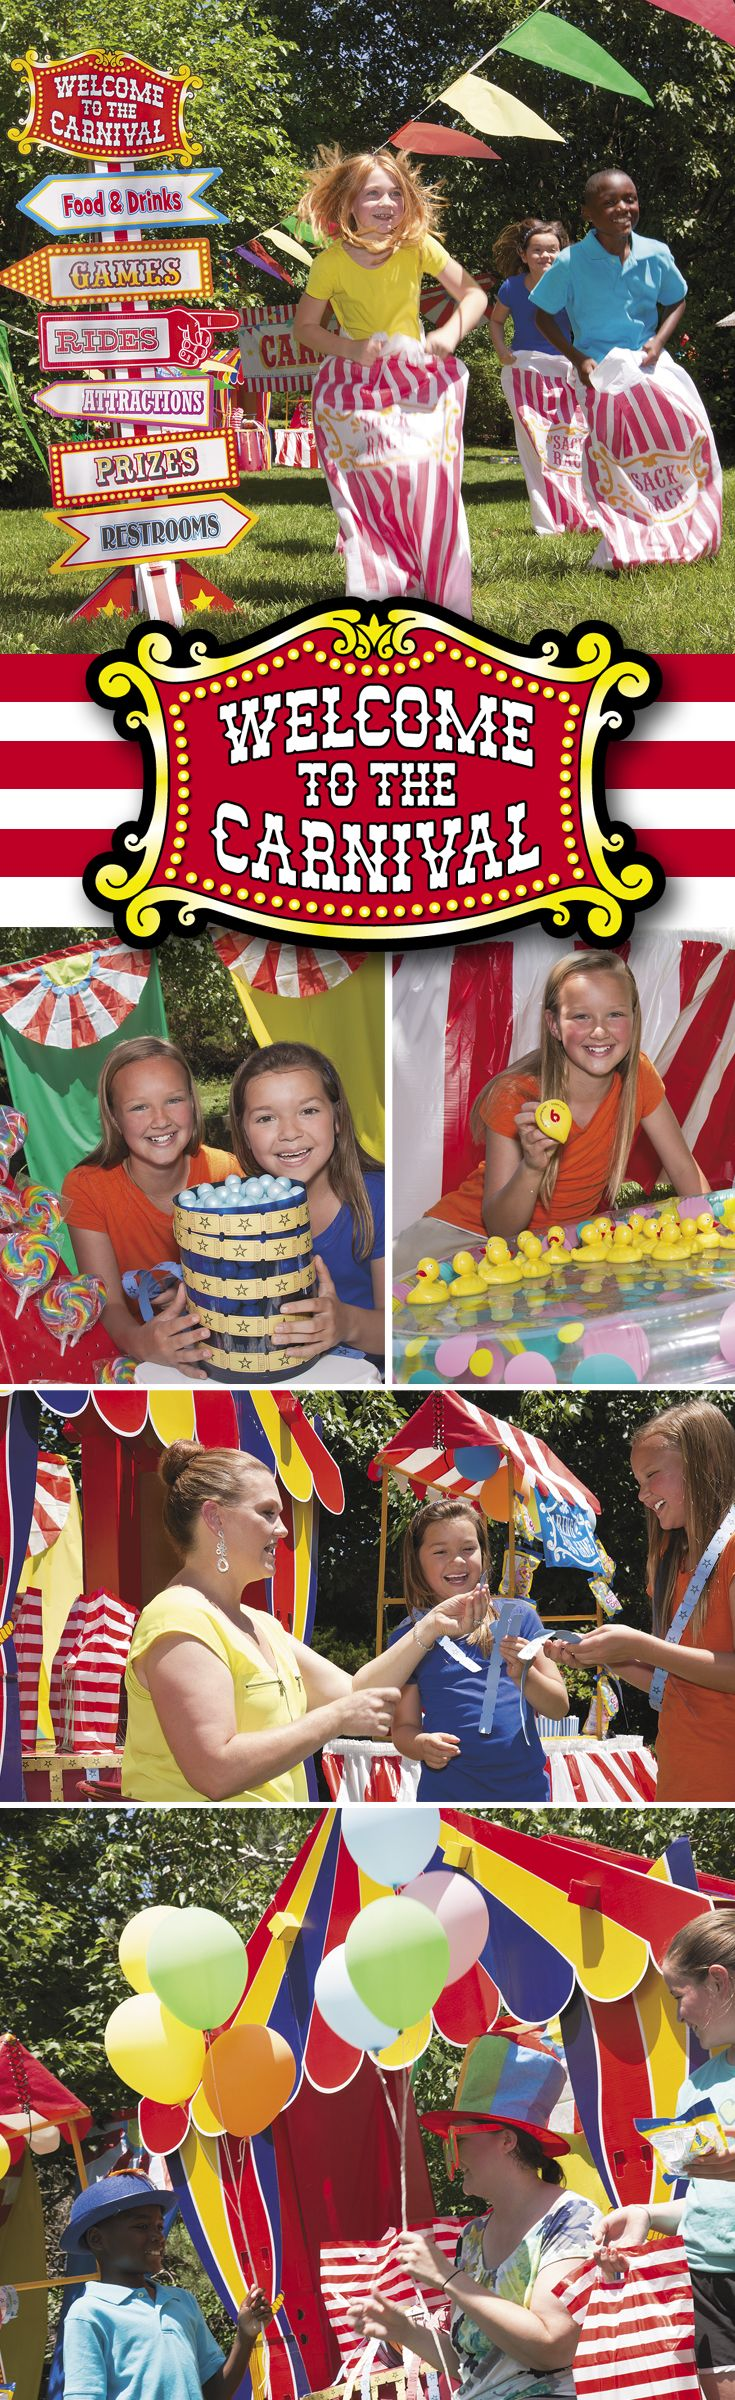 Everyone loves a carnival! From carnival parties to school carnivals, make yours the best yet with supplies from Oriental Trading! #carnival